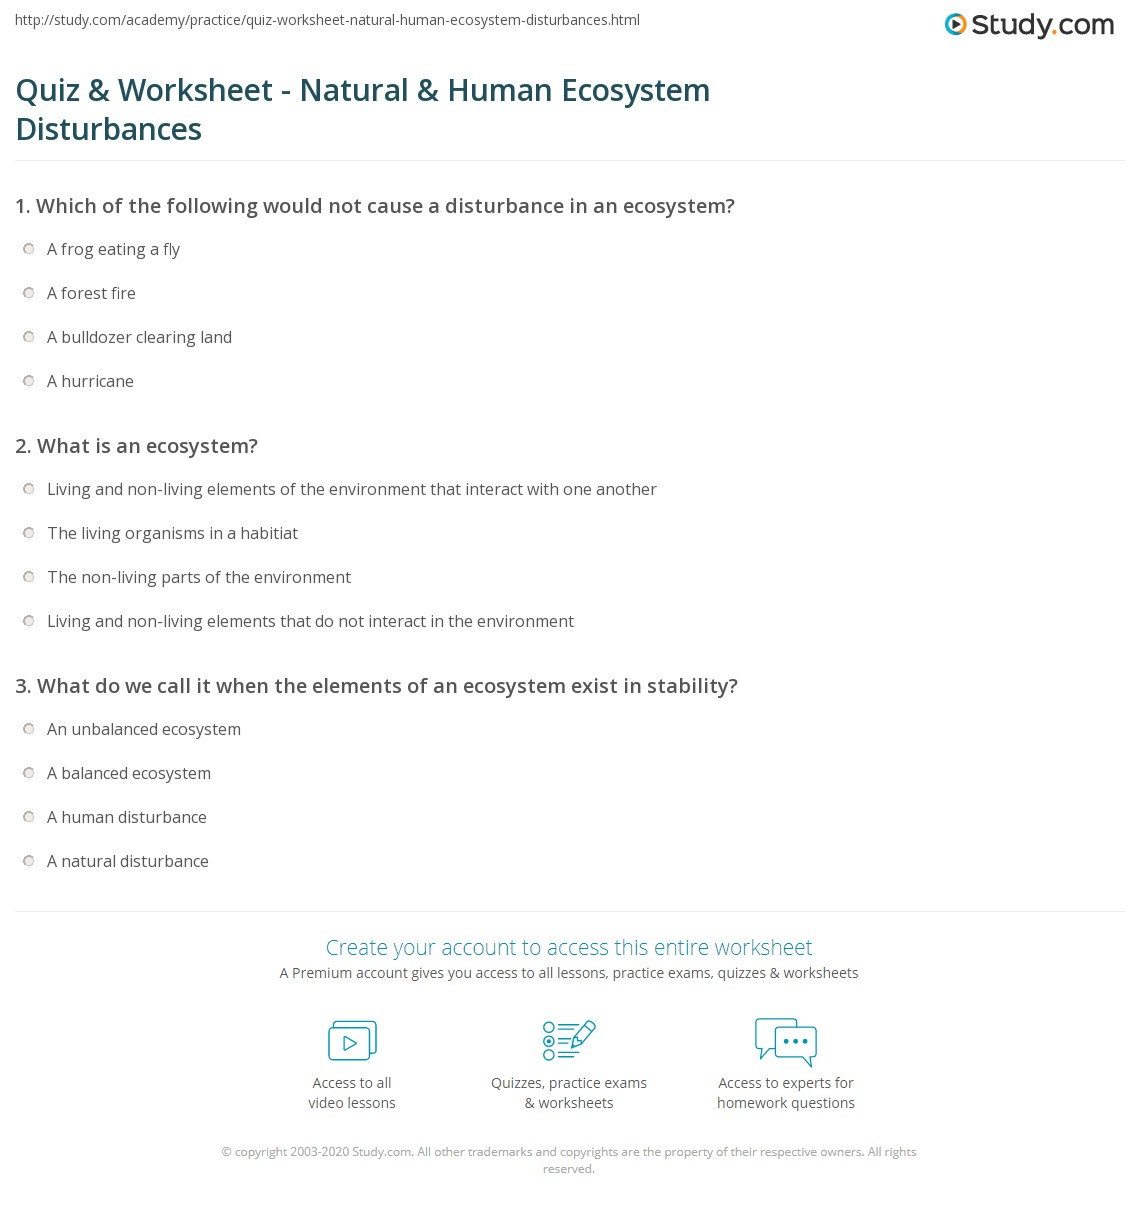 Printables Ecosystem Worksheet quiz worksheet natural human ecosystem disturbances study com print that affect an worksheet